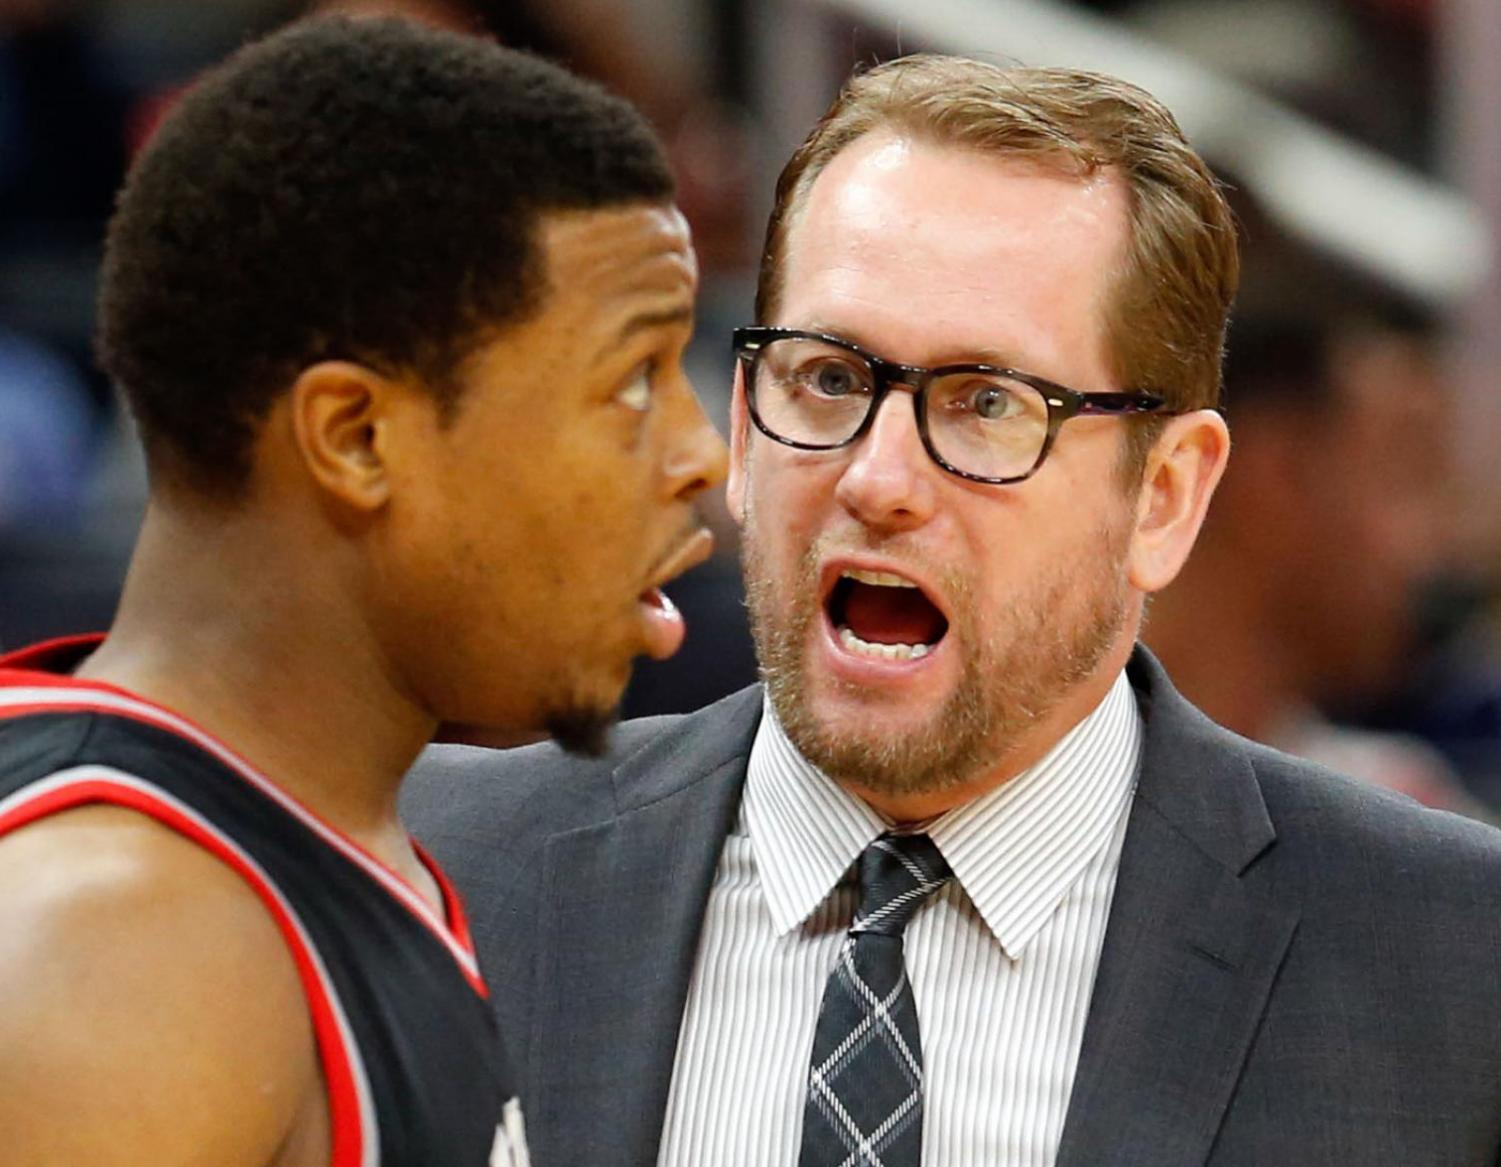 Nick Nurse (right) was hired as the ninth head coach of the NBA's Toronto Raptors on June 14, 2018. He graduated from UNI in 1989.